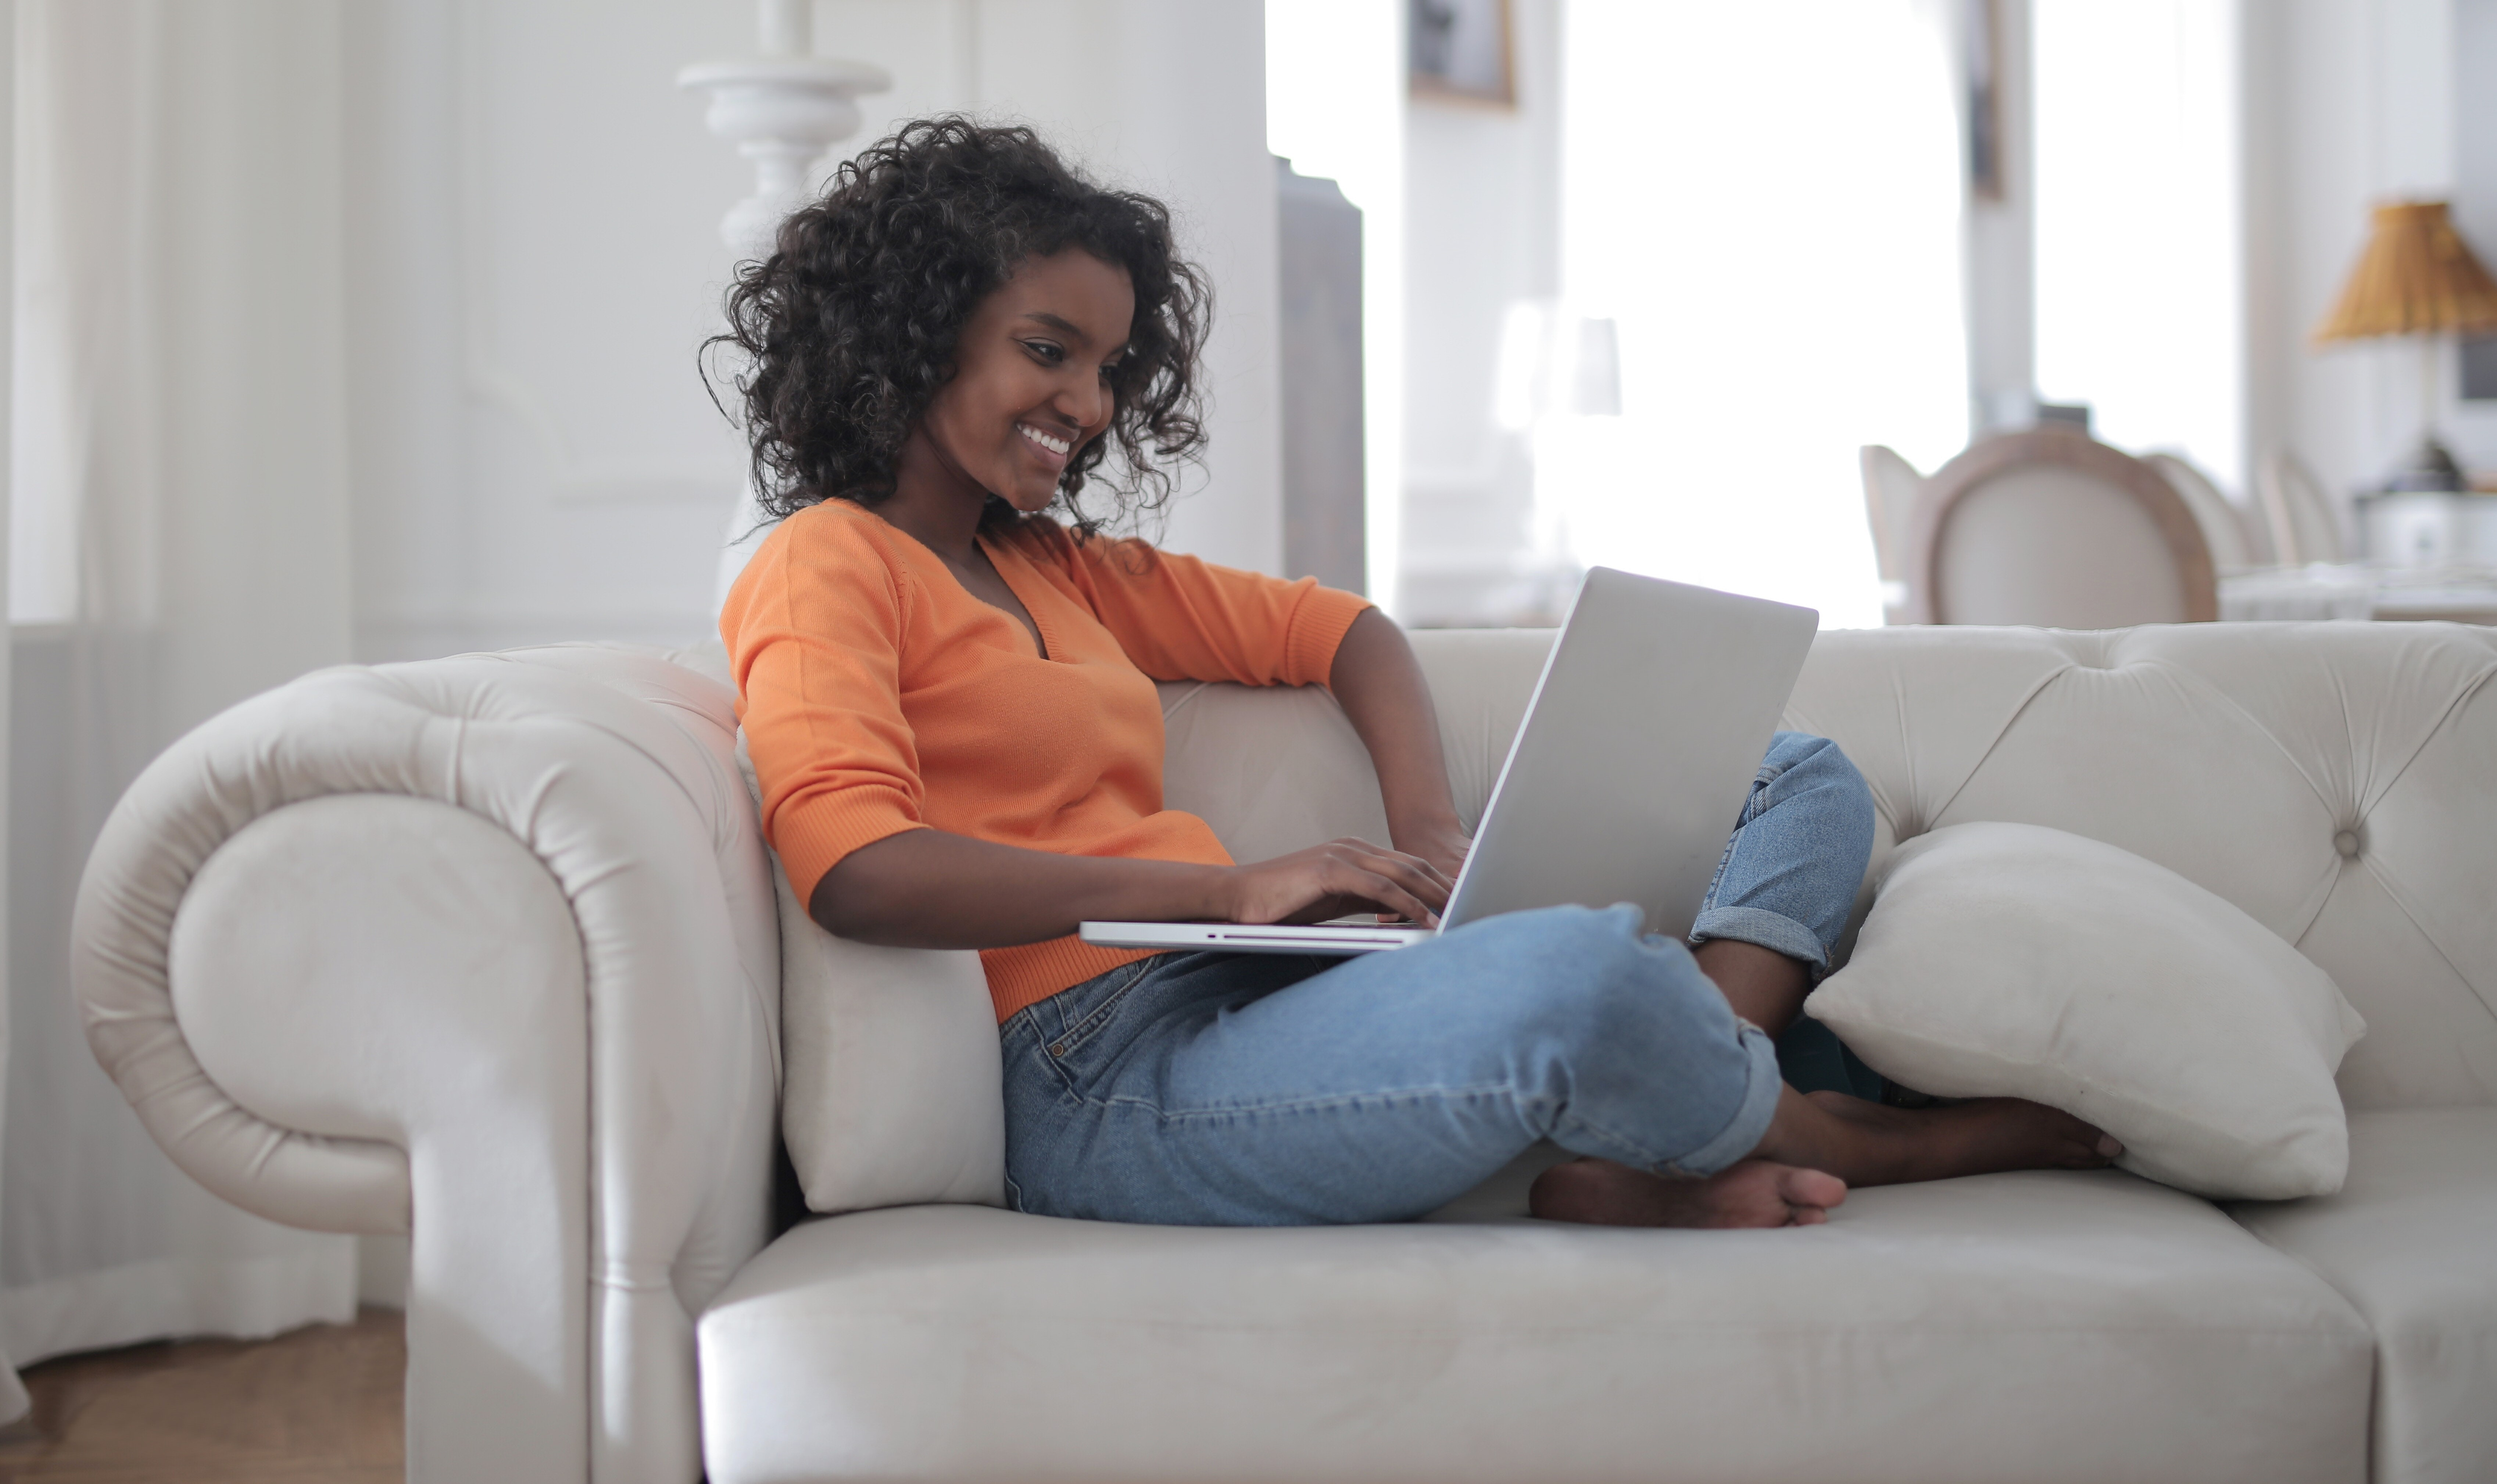 Consumers responding to online surveys at greater rates